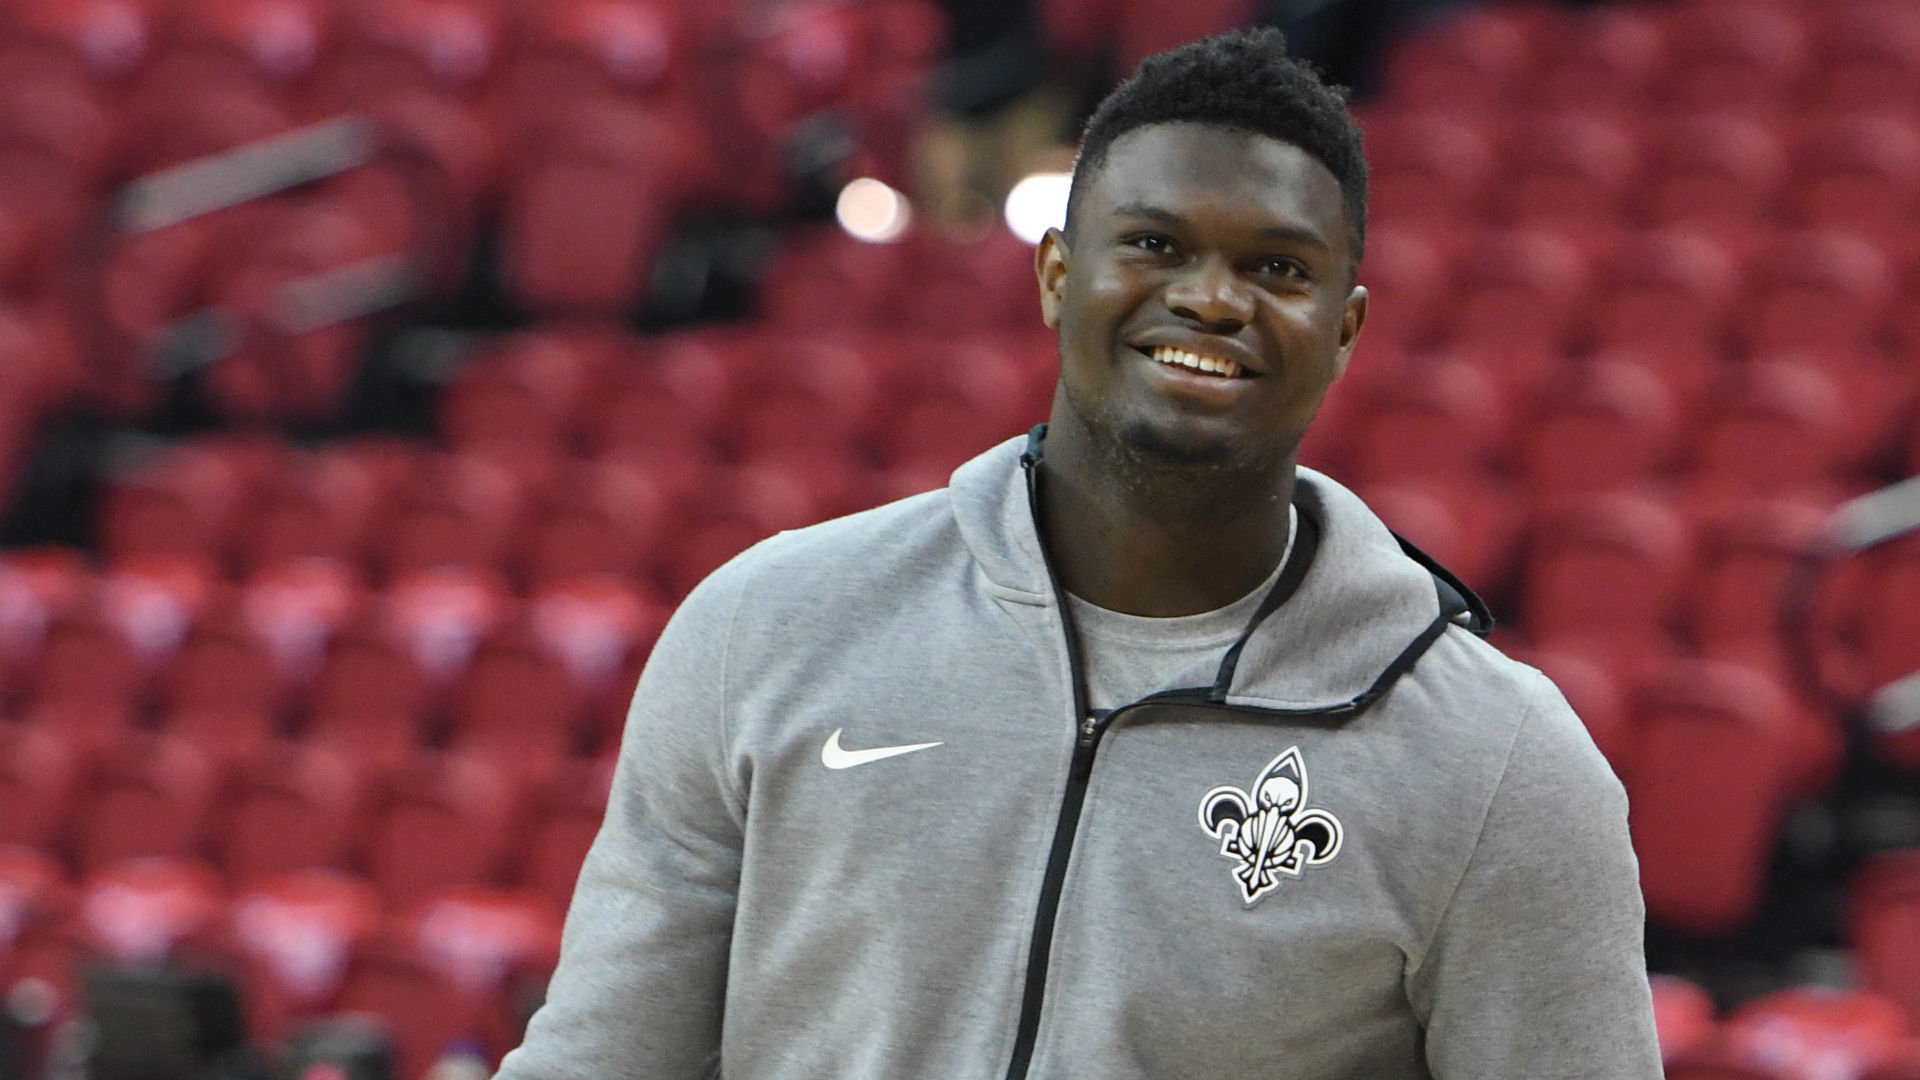 Zion Williamson filing claims ex-agent began recruiting him too early